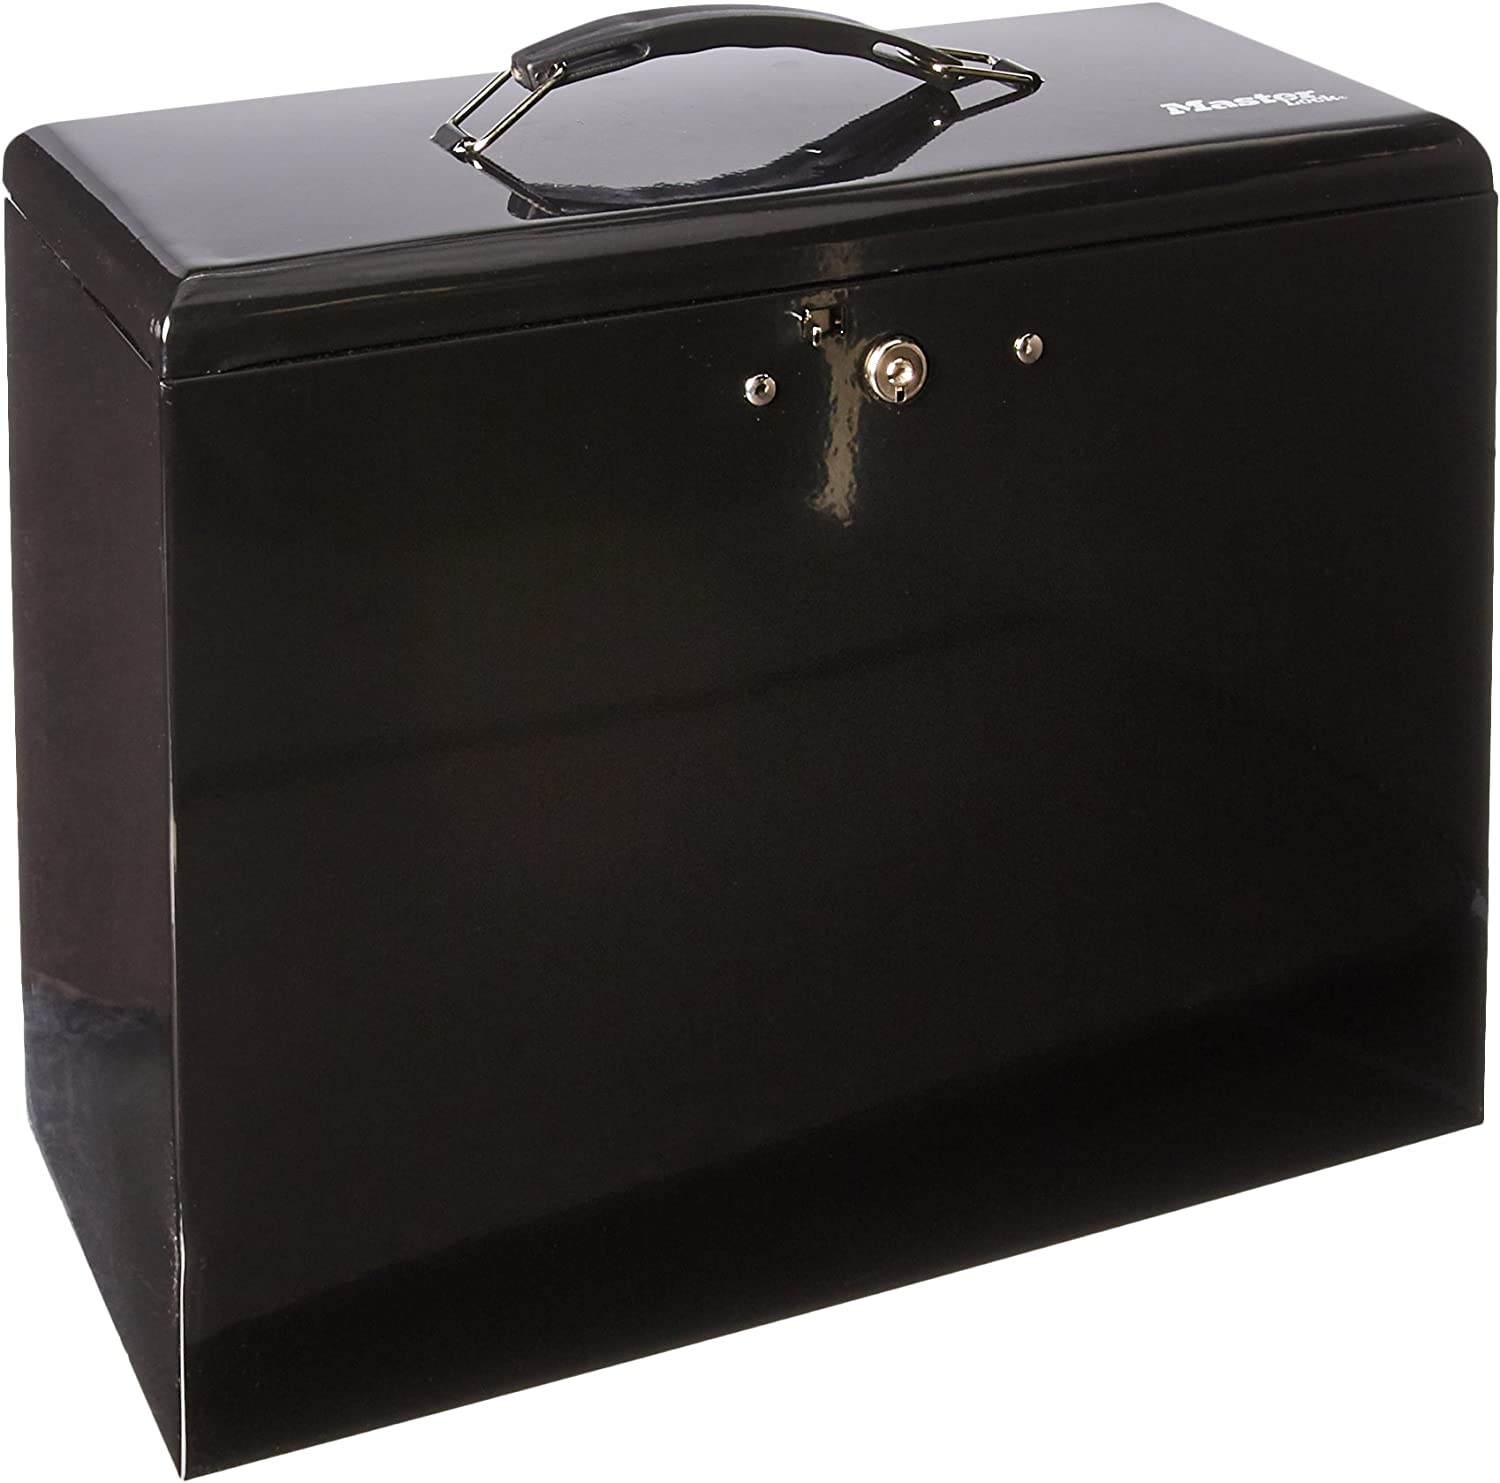 Master Lock 7148D File Box, 0.49 Cubic Feet, Black